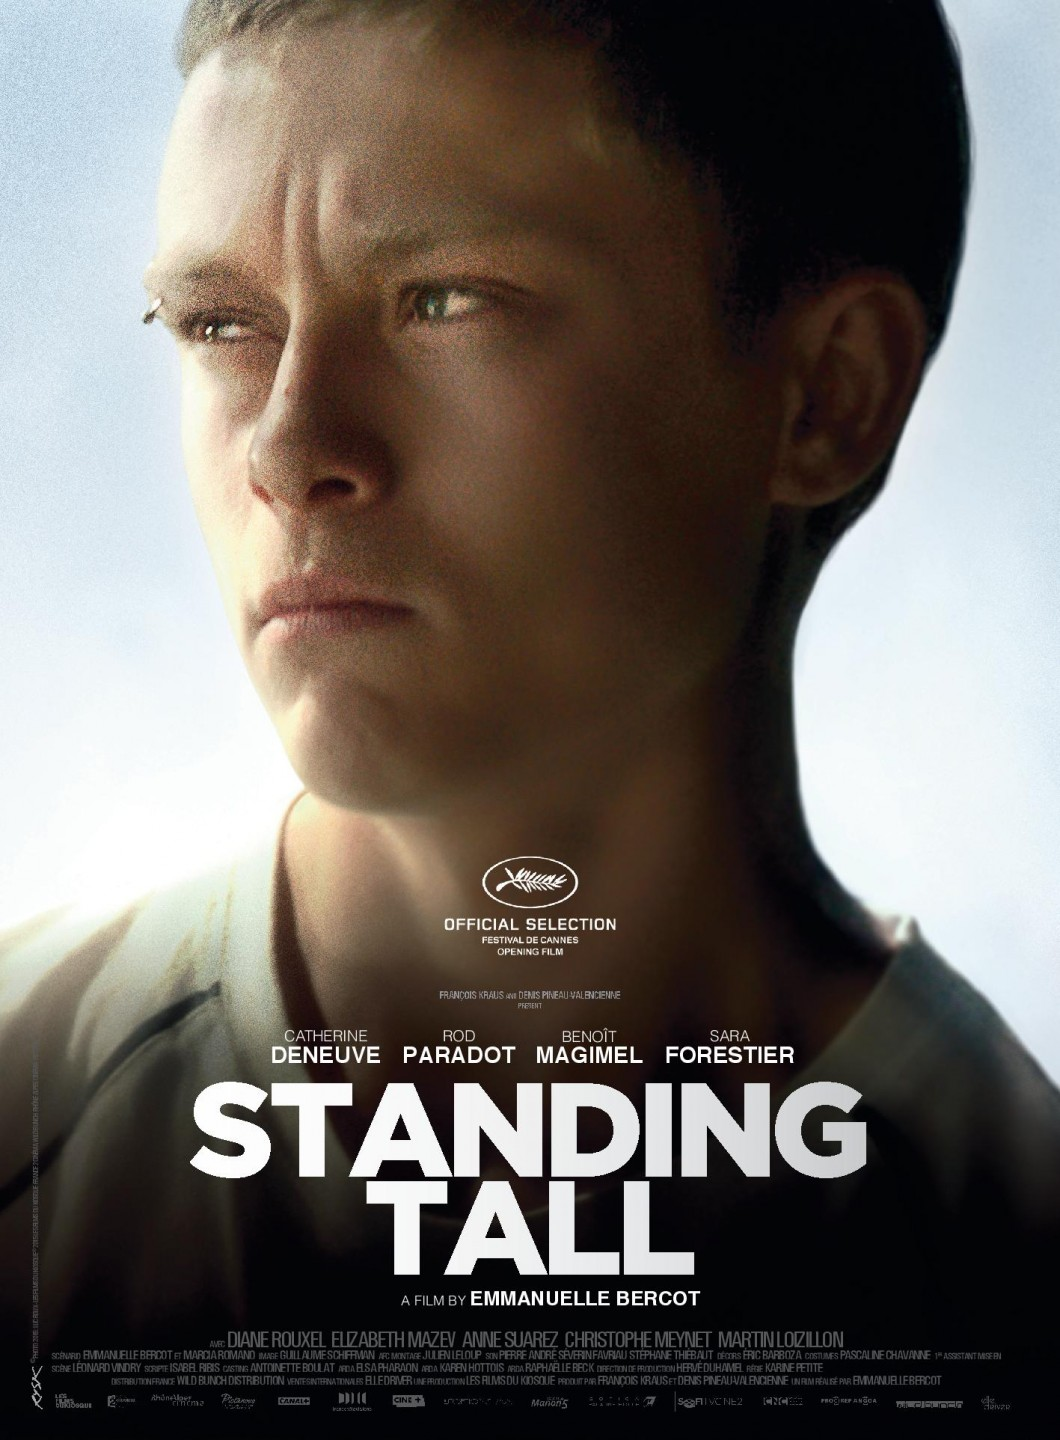 standing_tall_poster-page-001